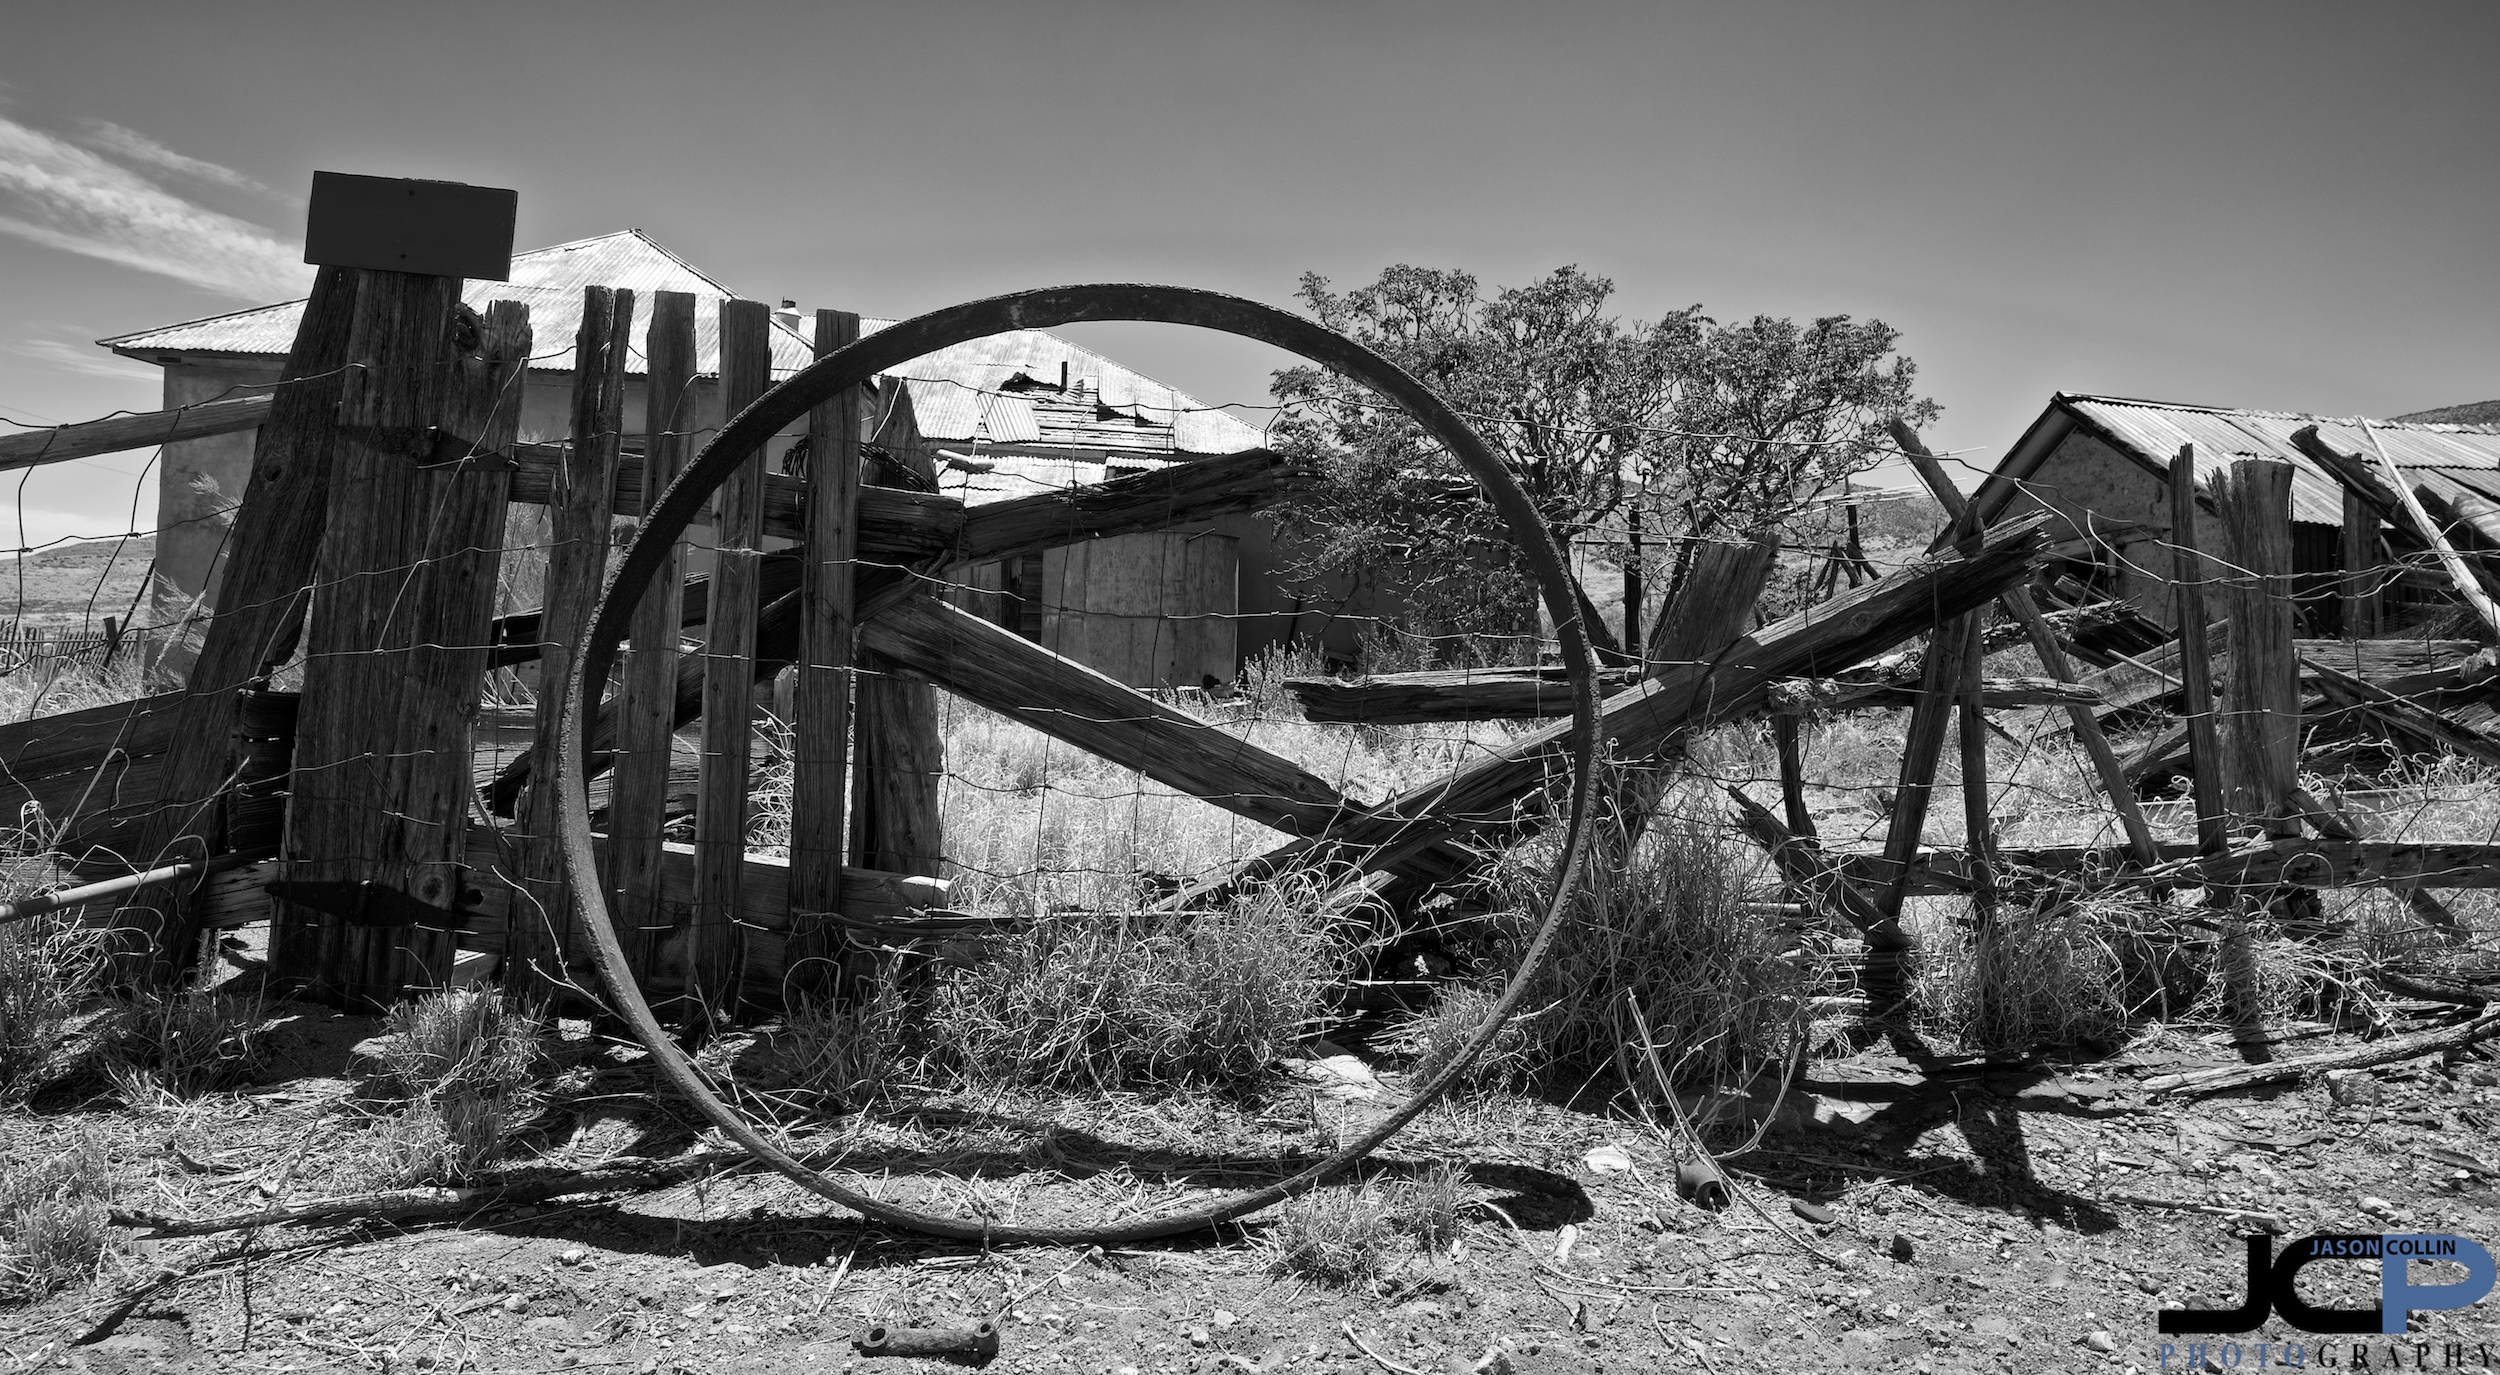 Becoming a ghost town outside of Hillsboro,New Mexico